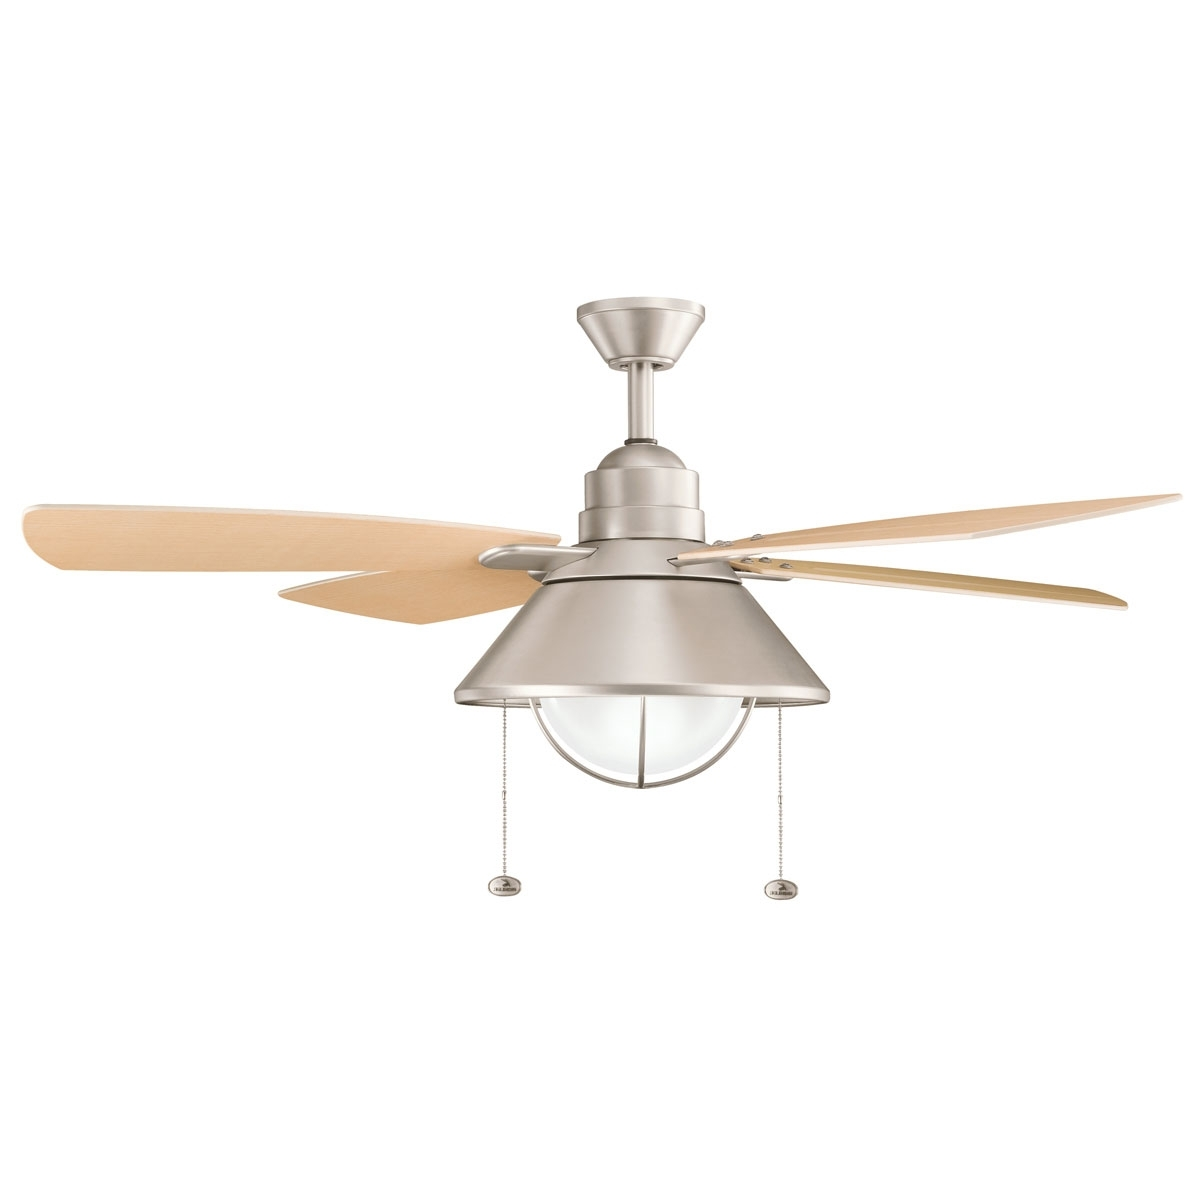 Nautical Ceiling Fans With Lights – Photos House Interior And Fan Throughout Newest Nautical Outdoor Ceiling Fans (Gallery 10 of 20)